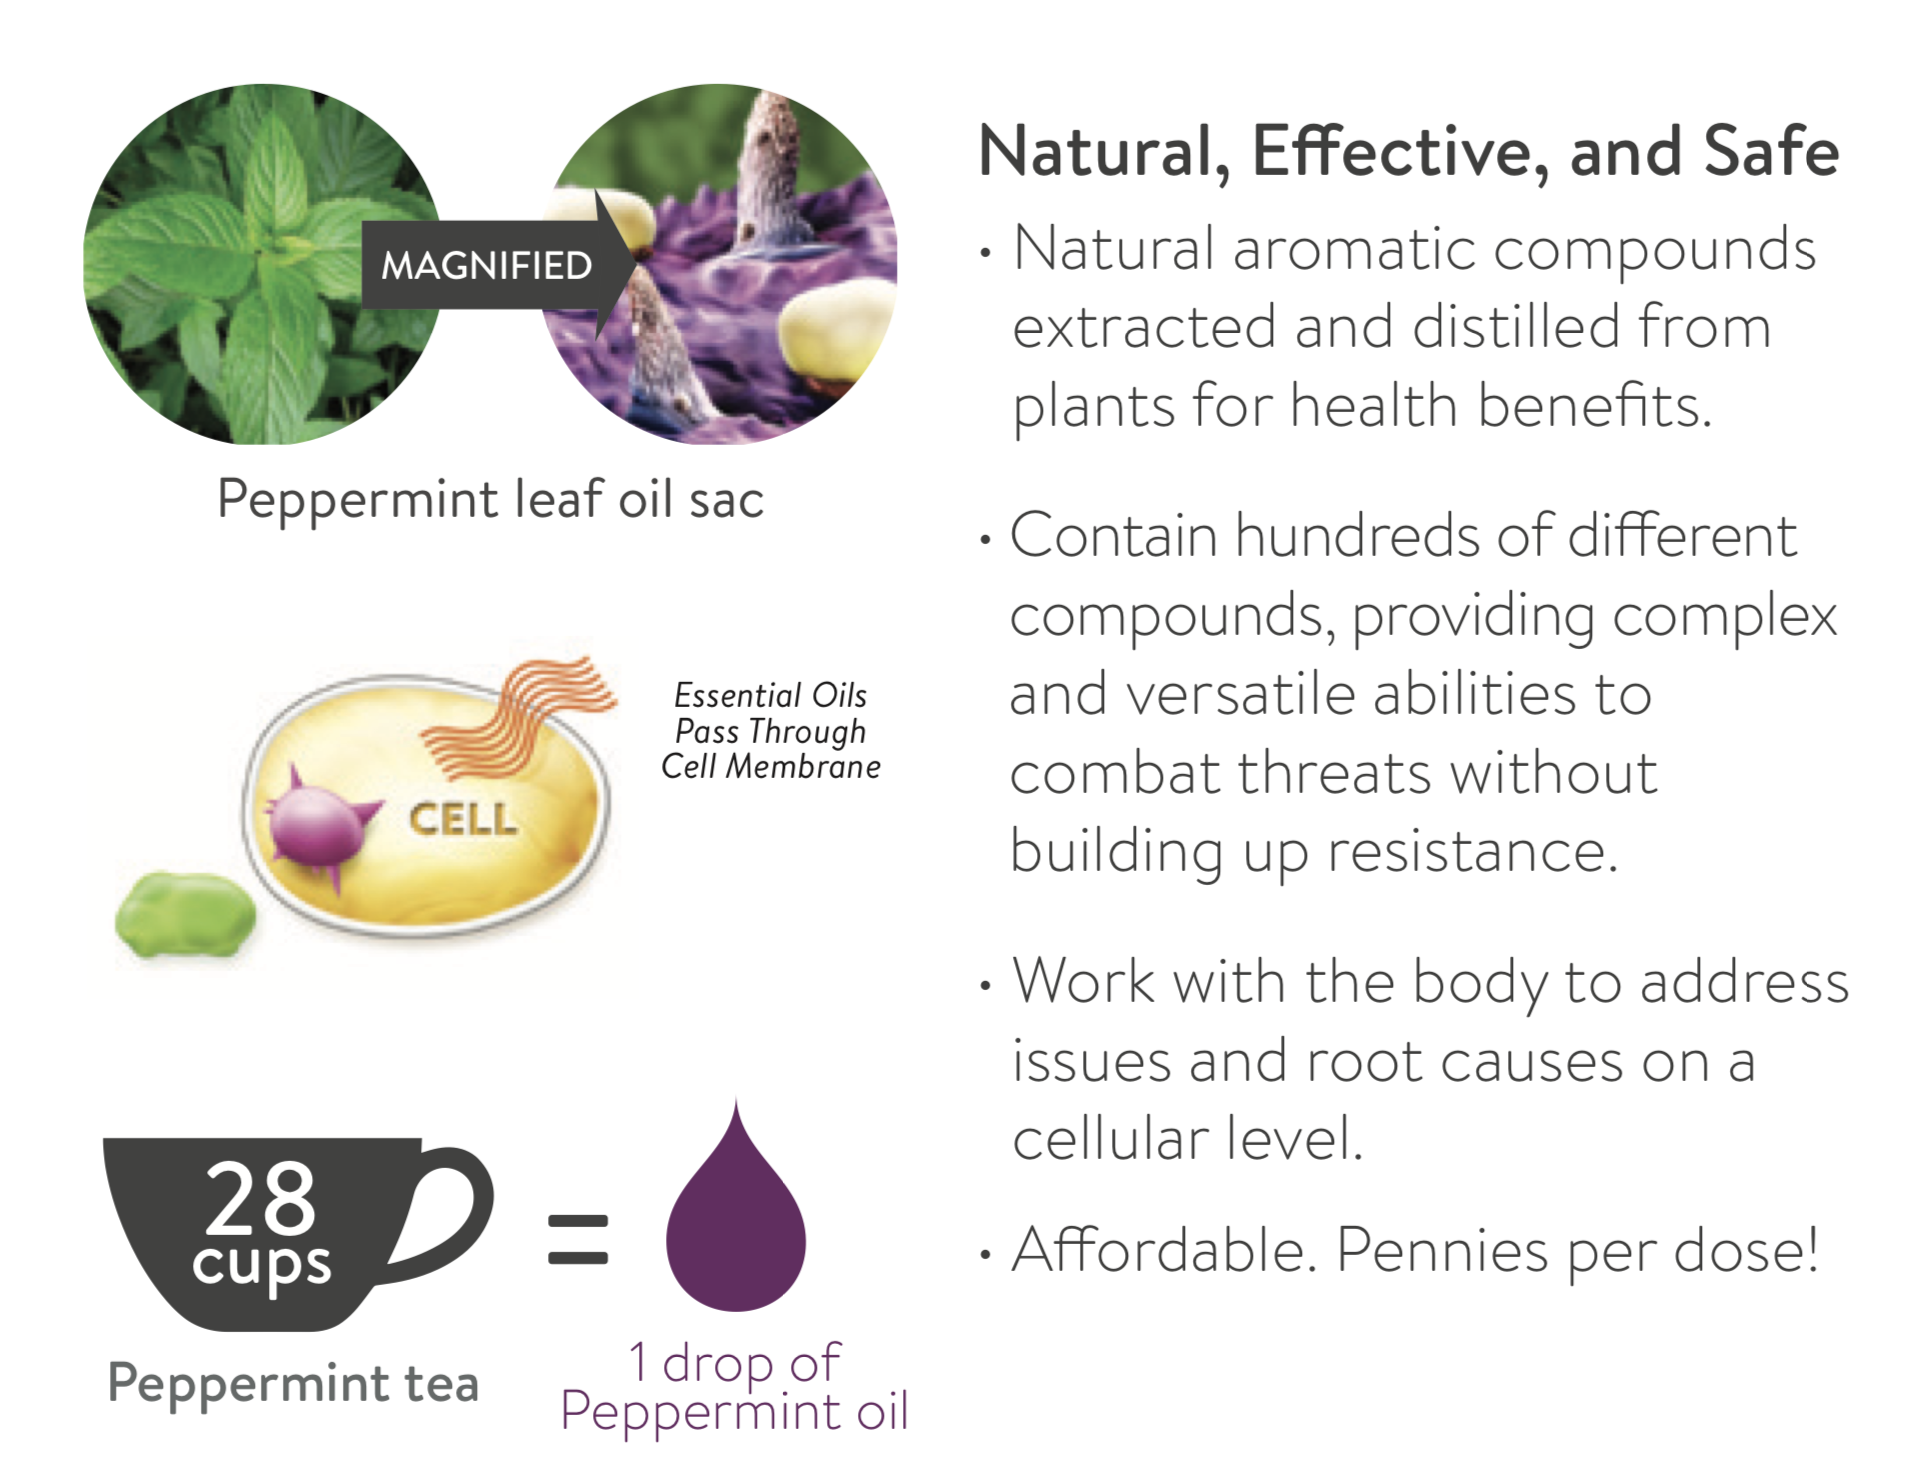 Essential oils are extracted from different parts of the plant and are 50 to 70 times more powerful than herbs.